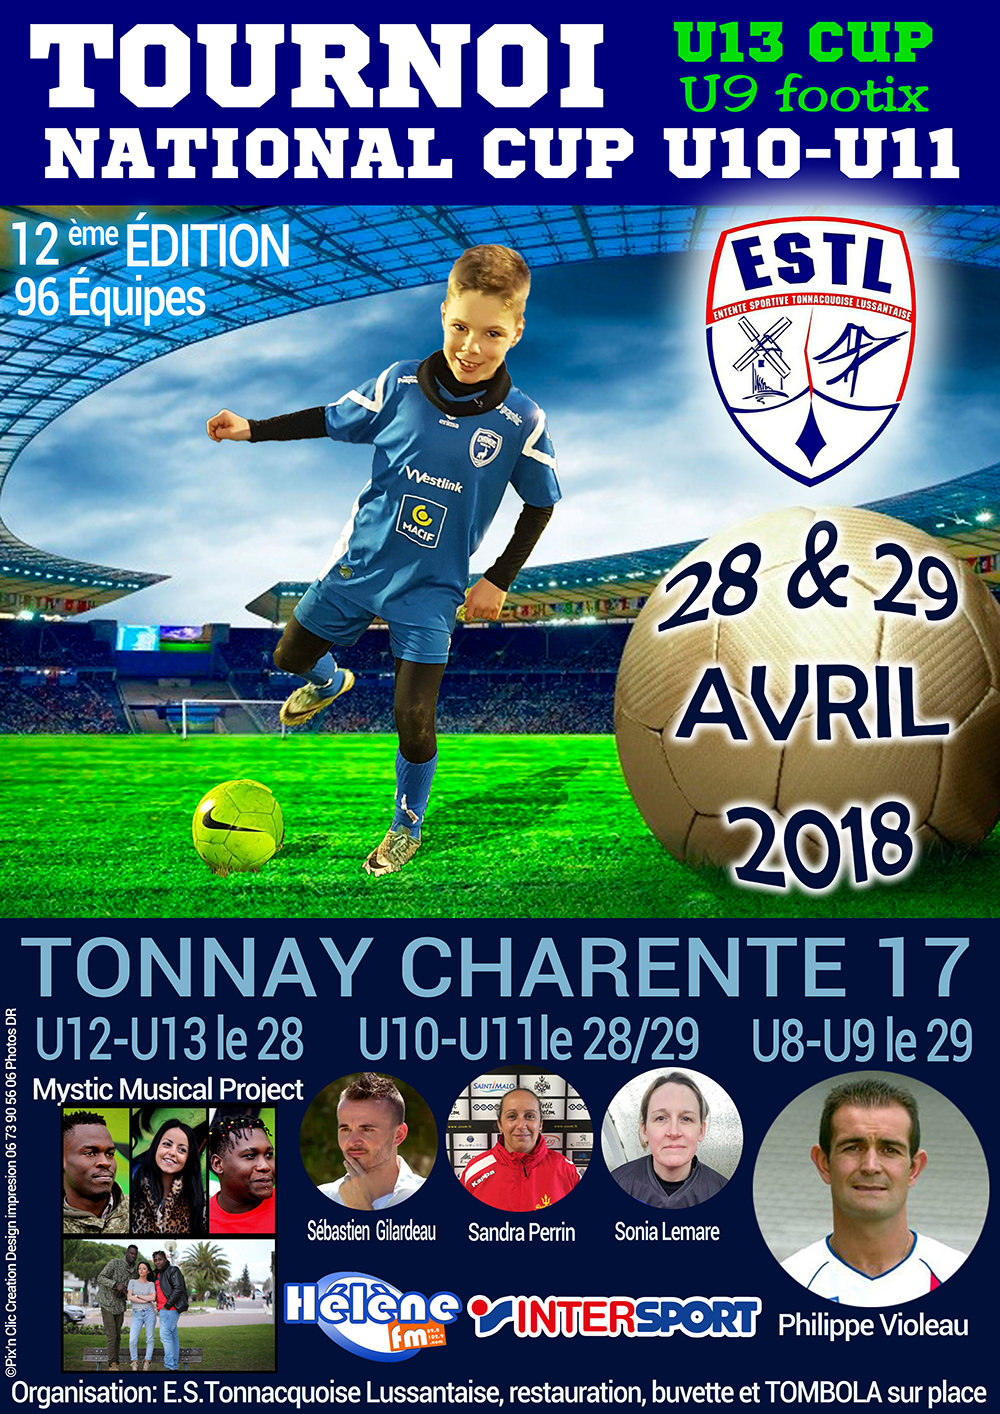 Tonnay Charente Helene Fm Page 9